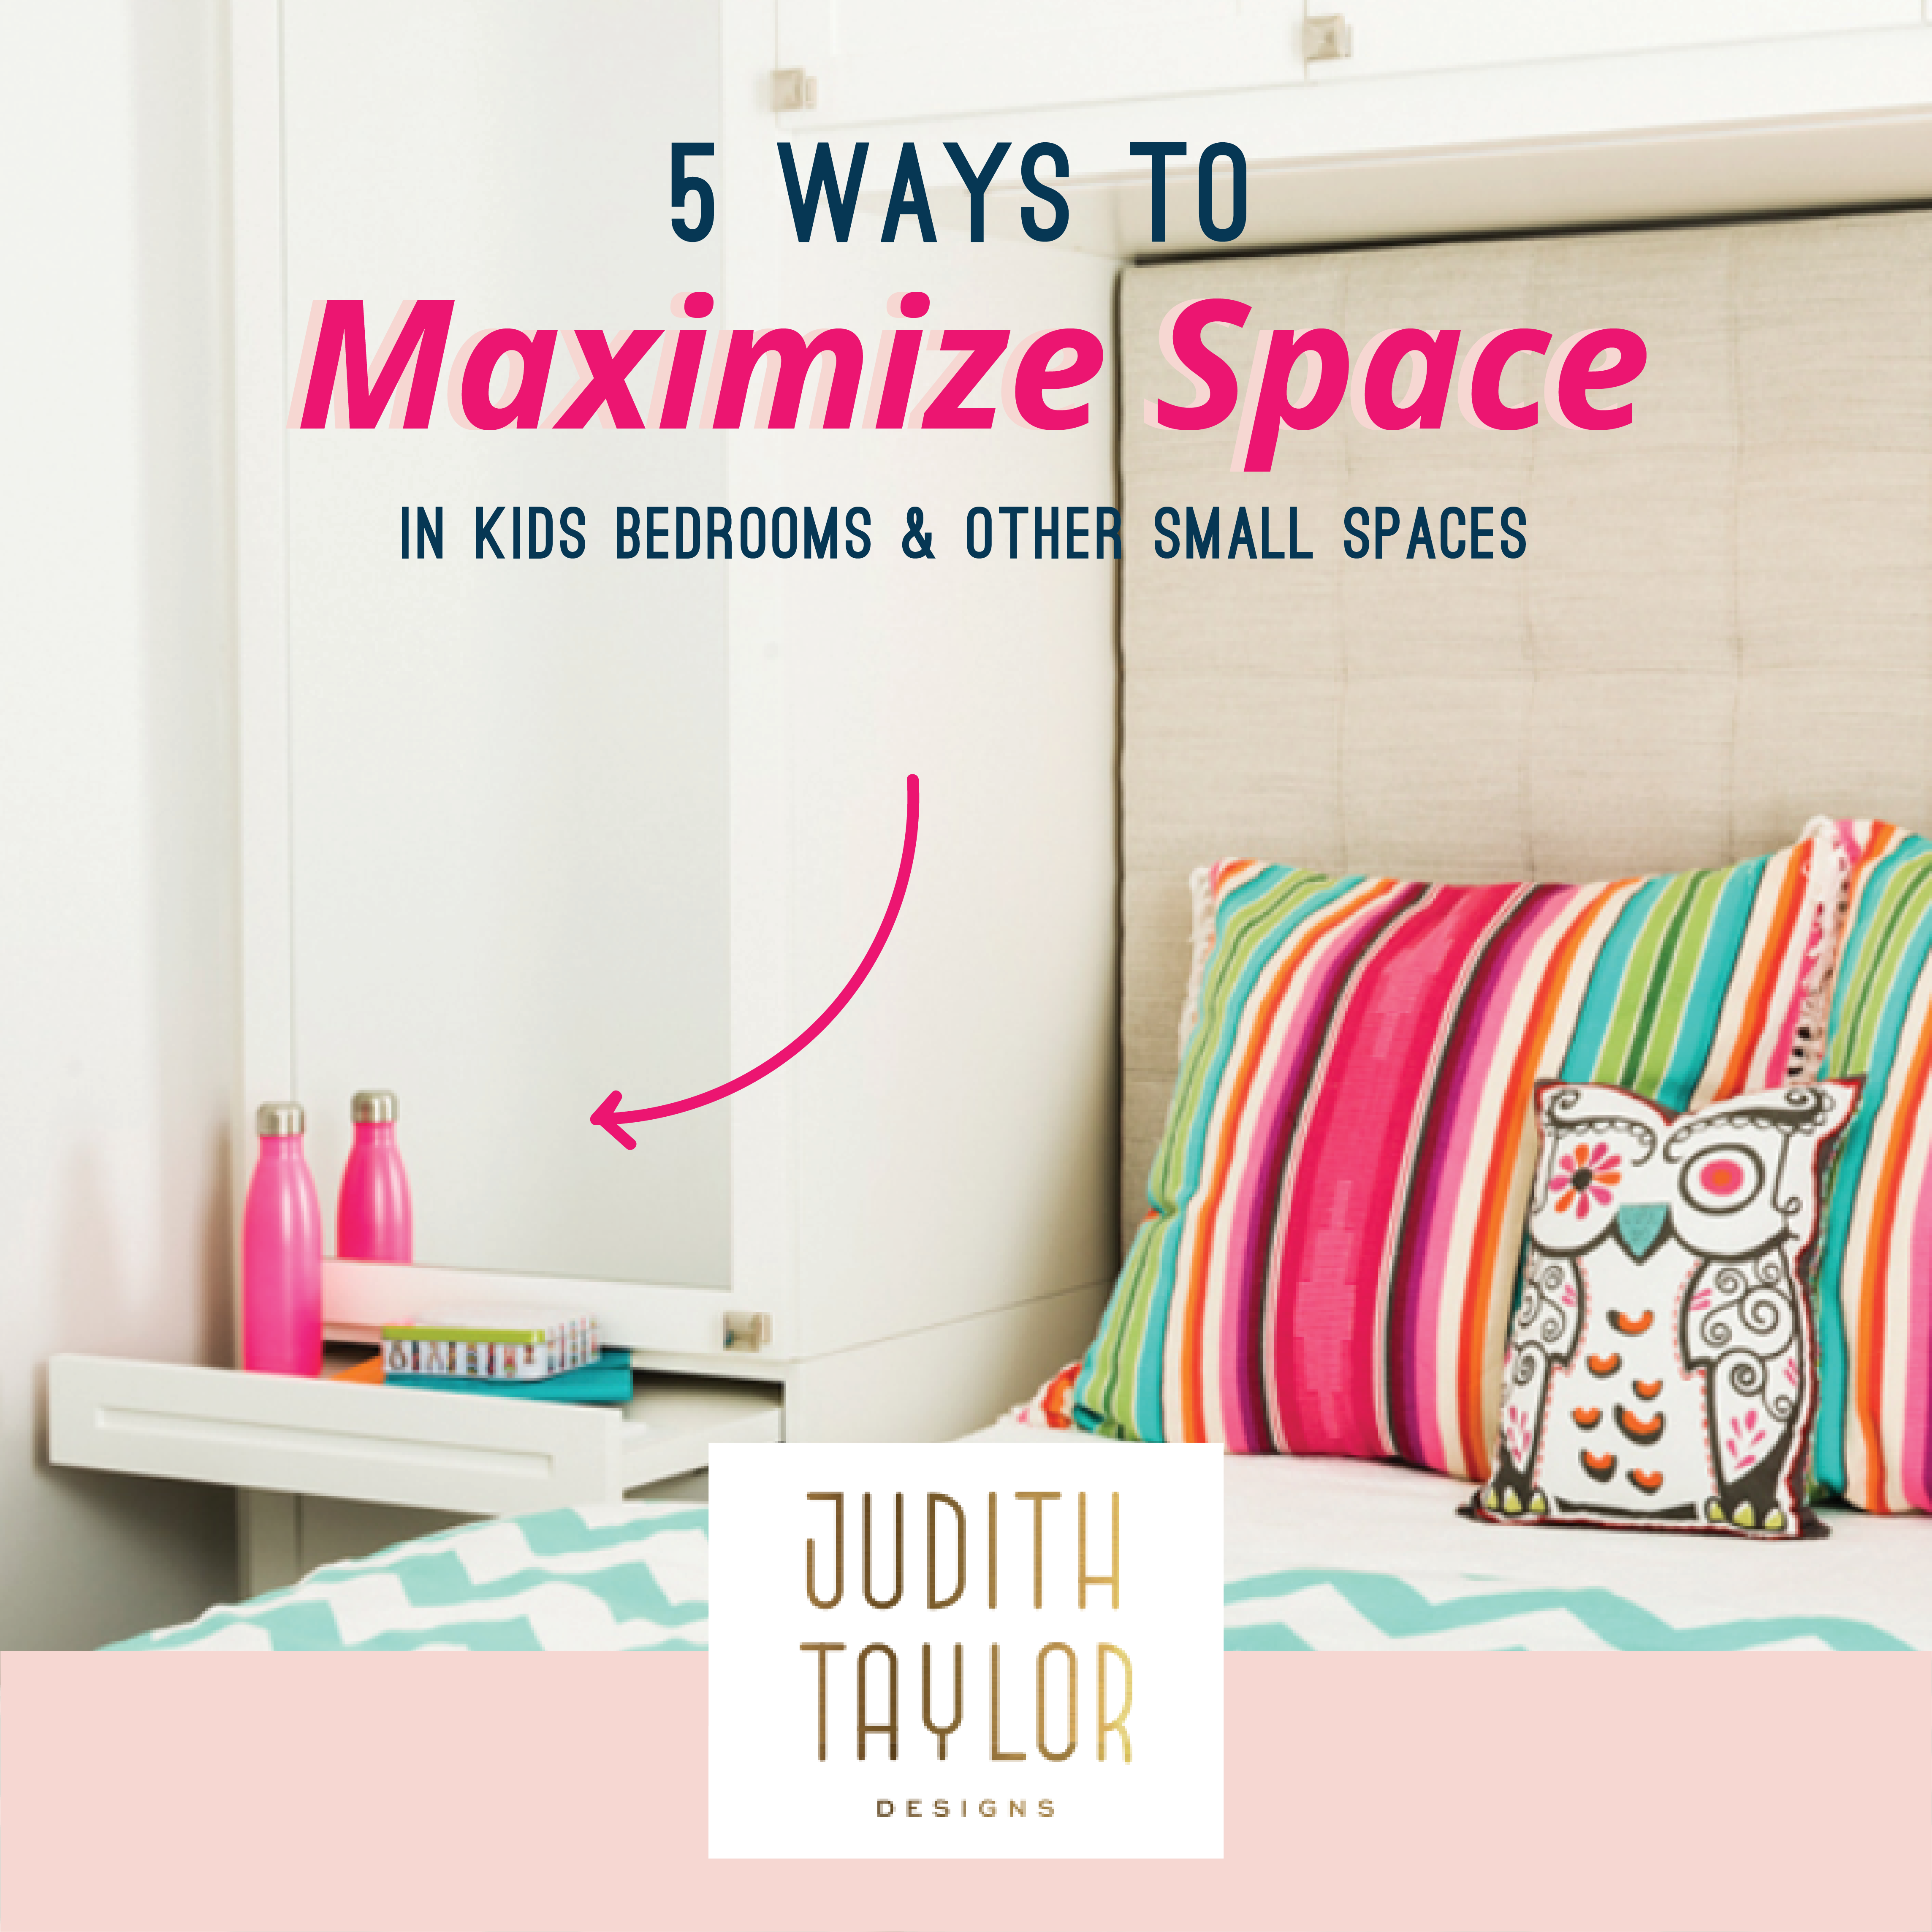 5 Ways to Maximize Space in Kids Bedrooms & Other Small Spaces ...